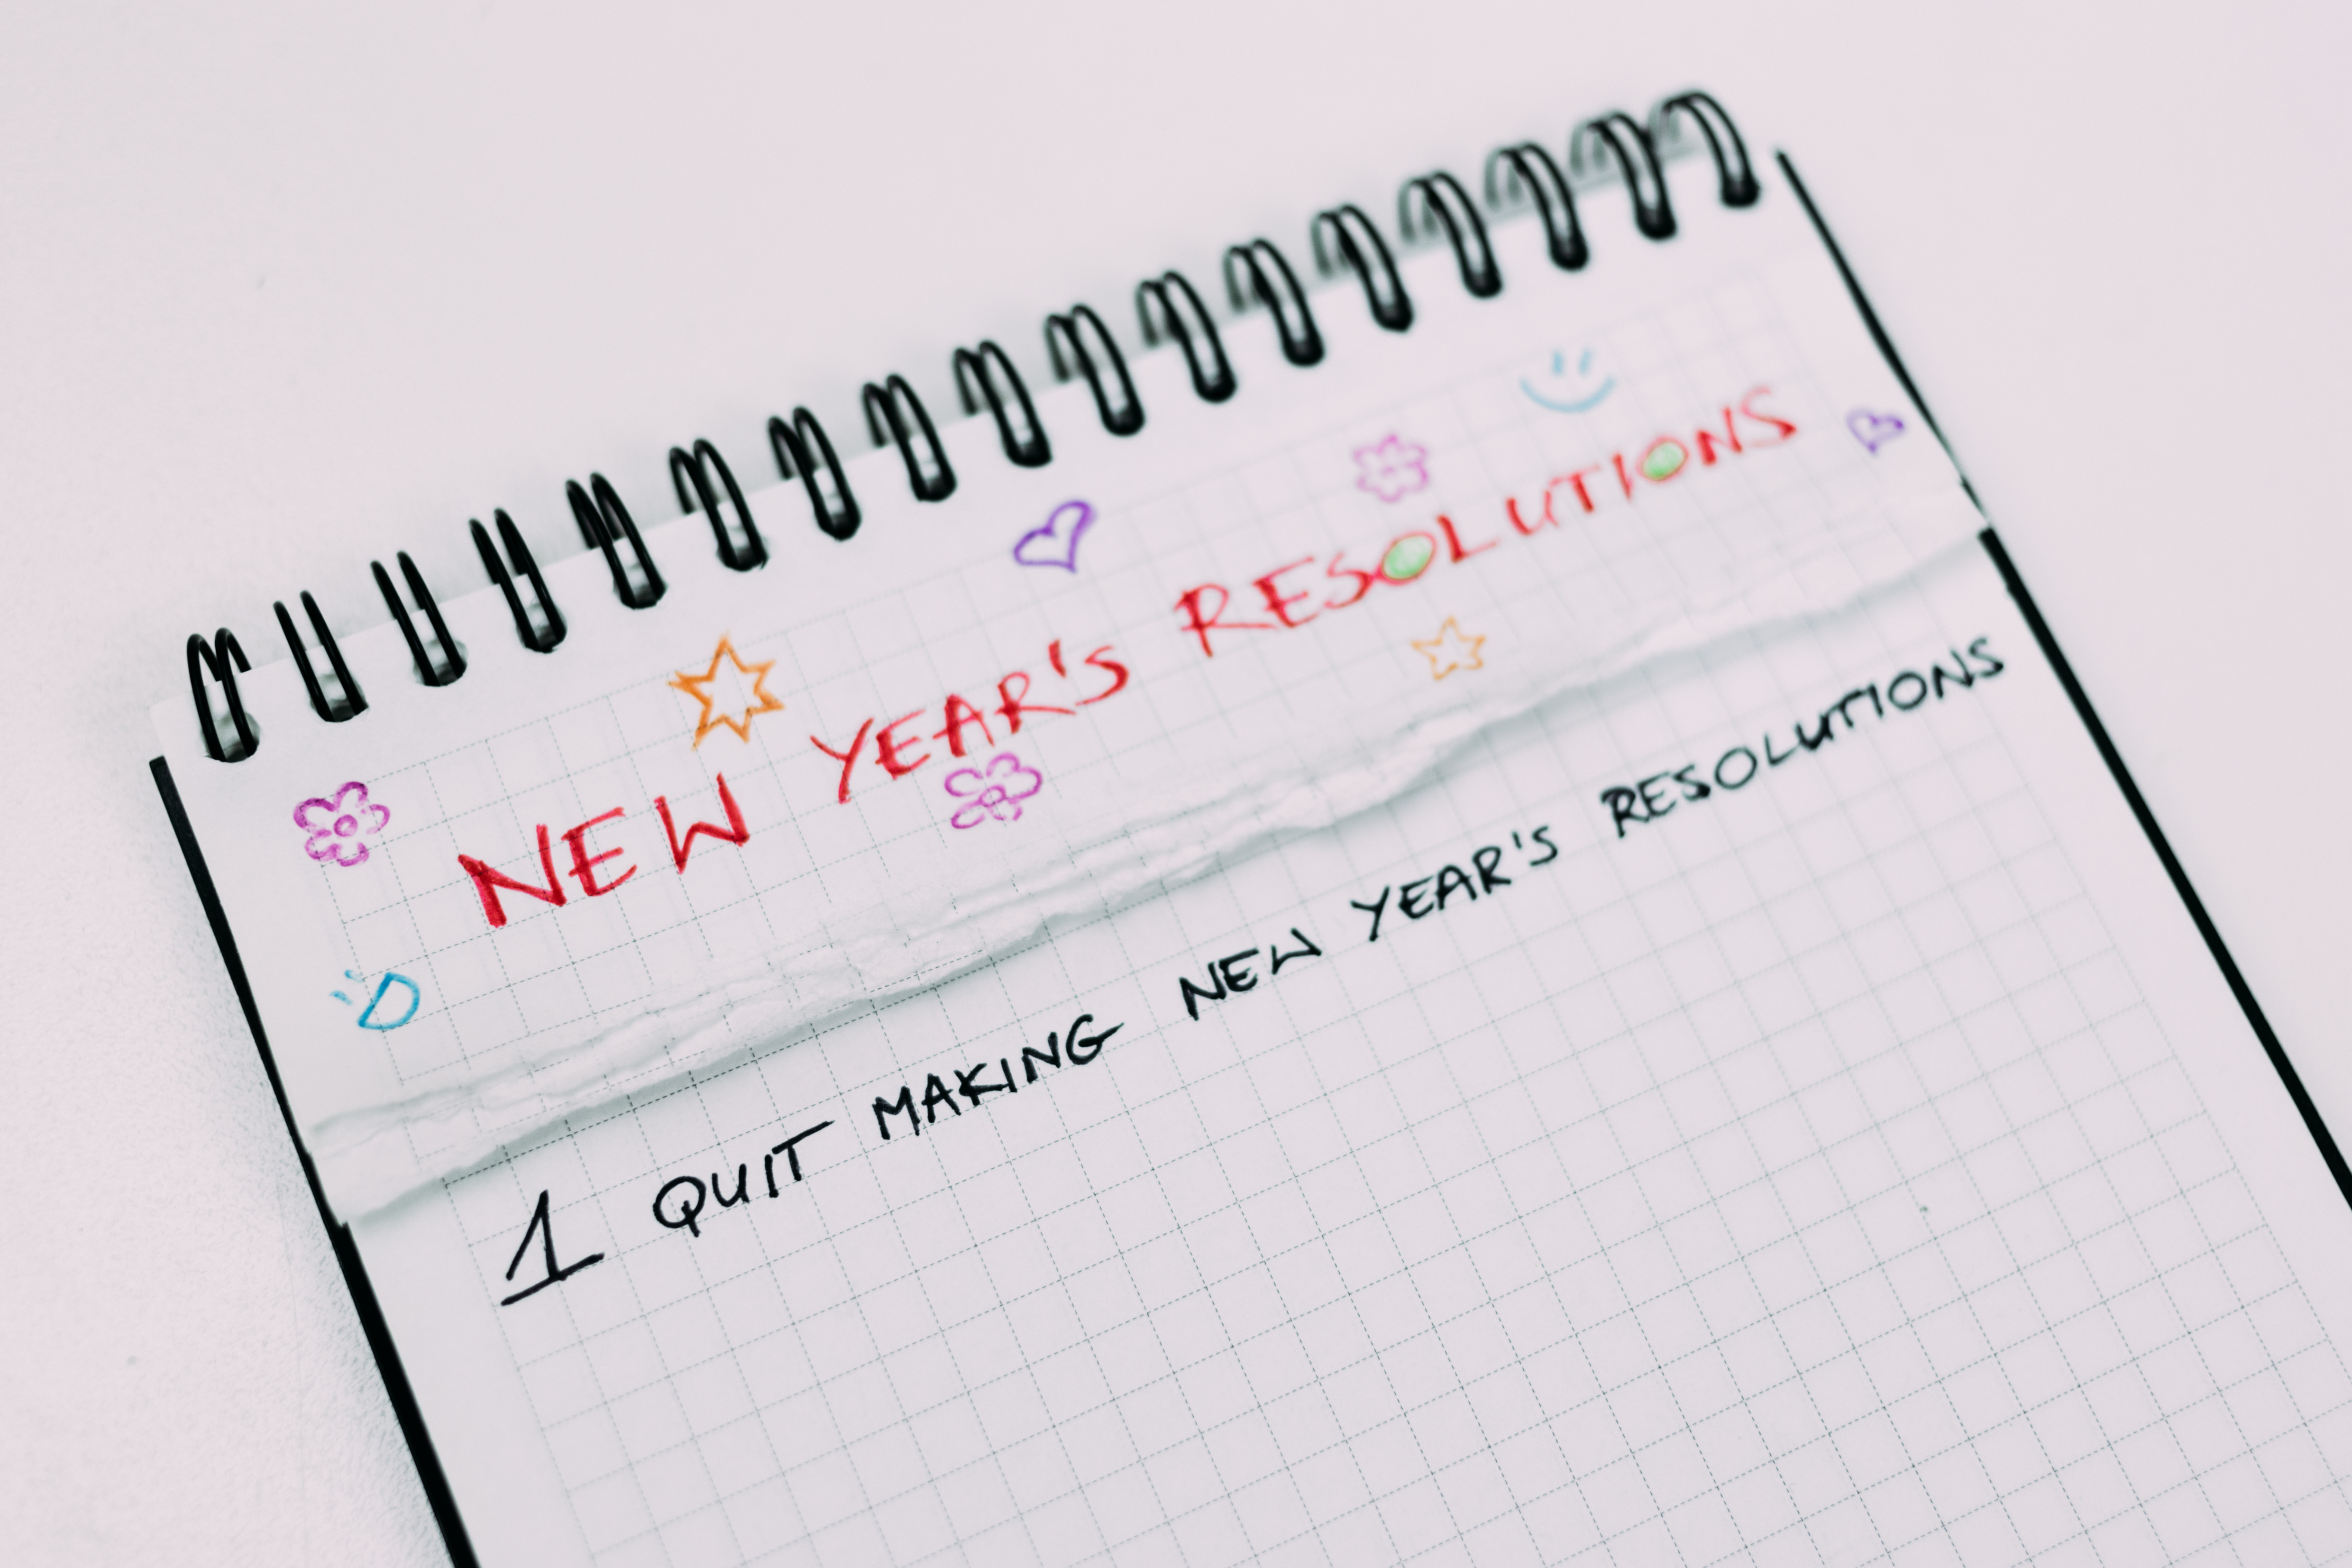 New year resolution for teen